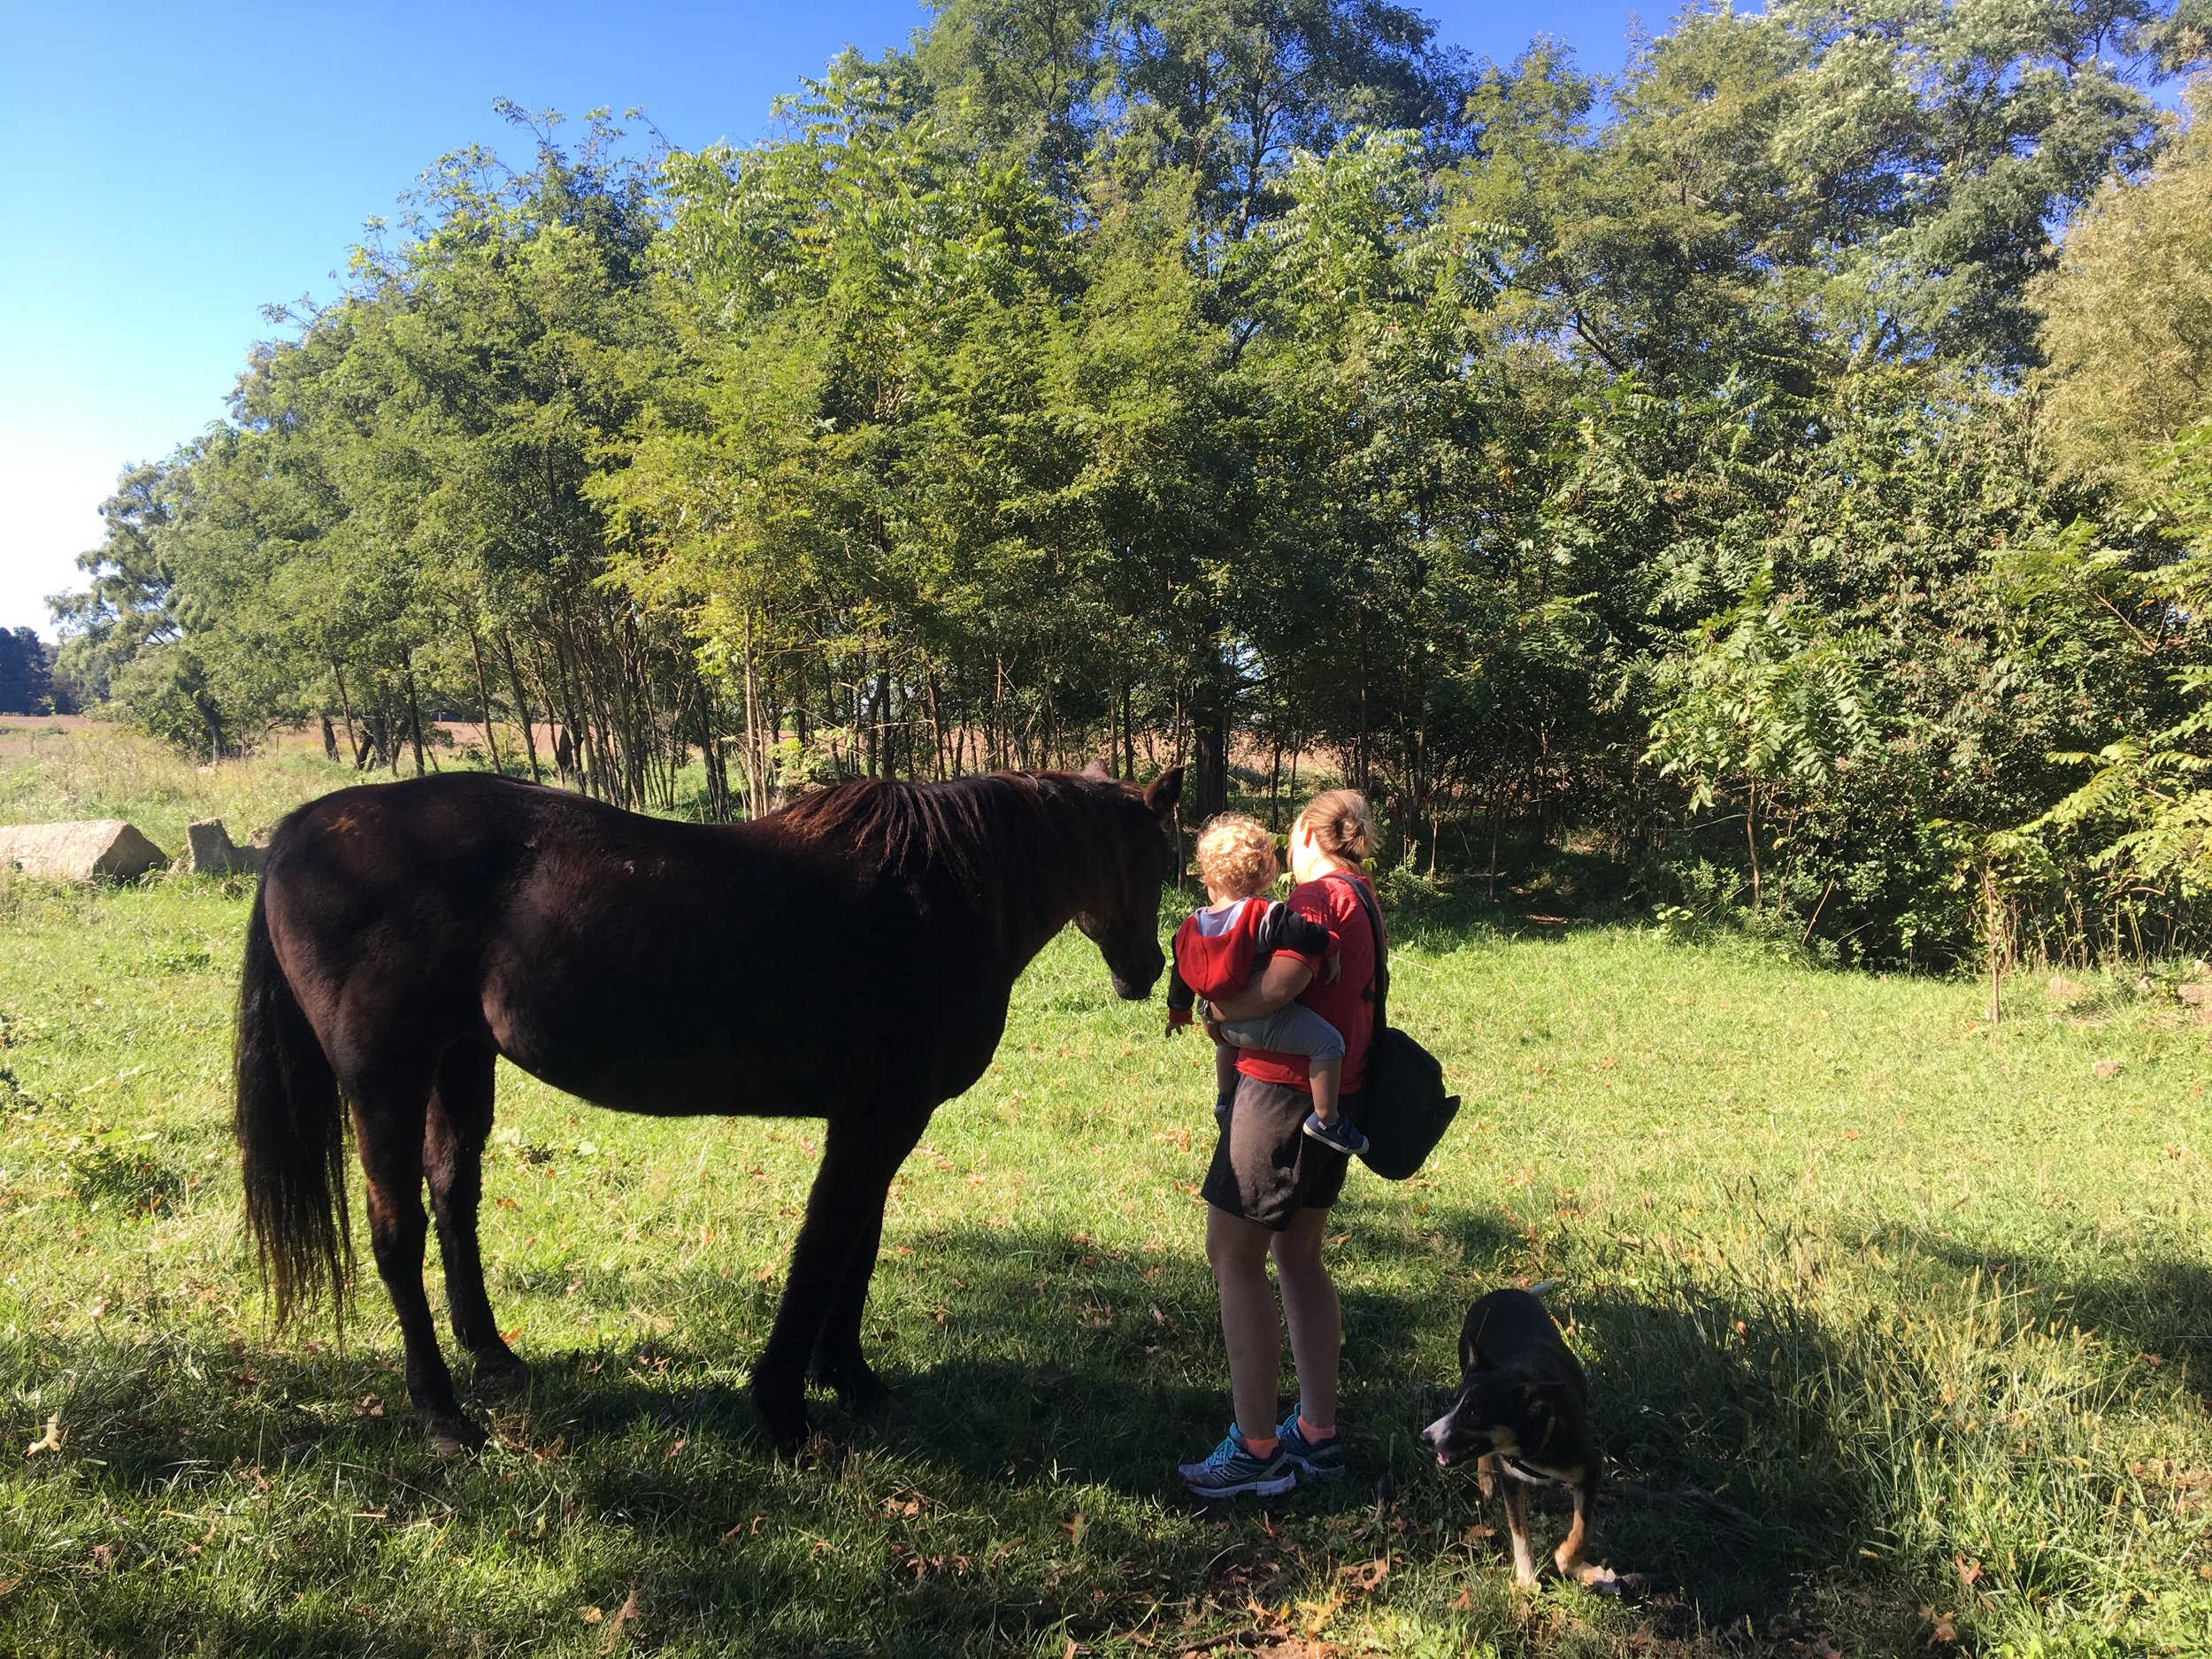 Meeting my horse, Hannah, for the first time at Nana and Pop Pop's farm.